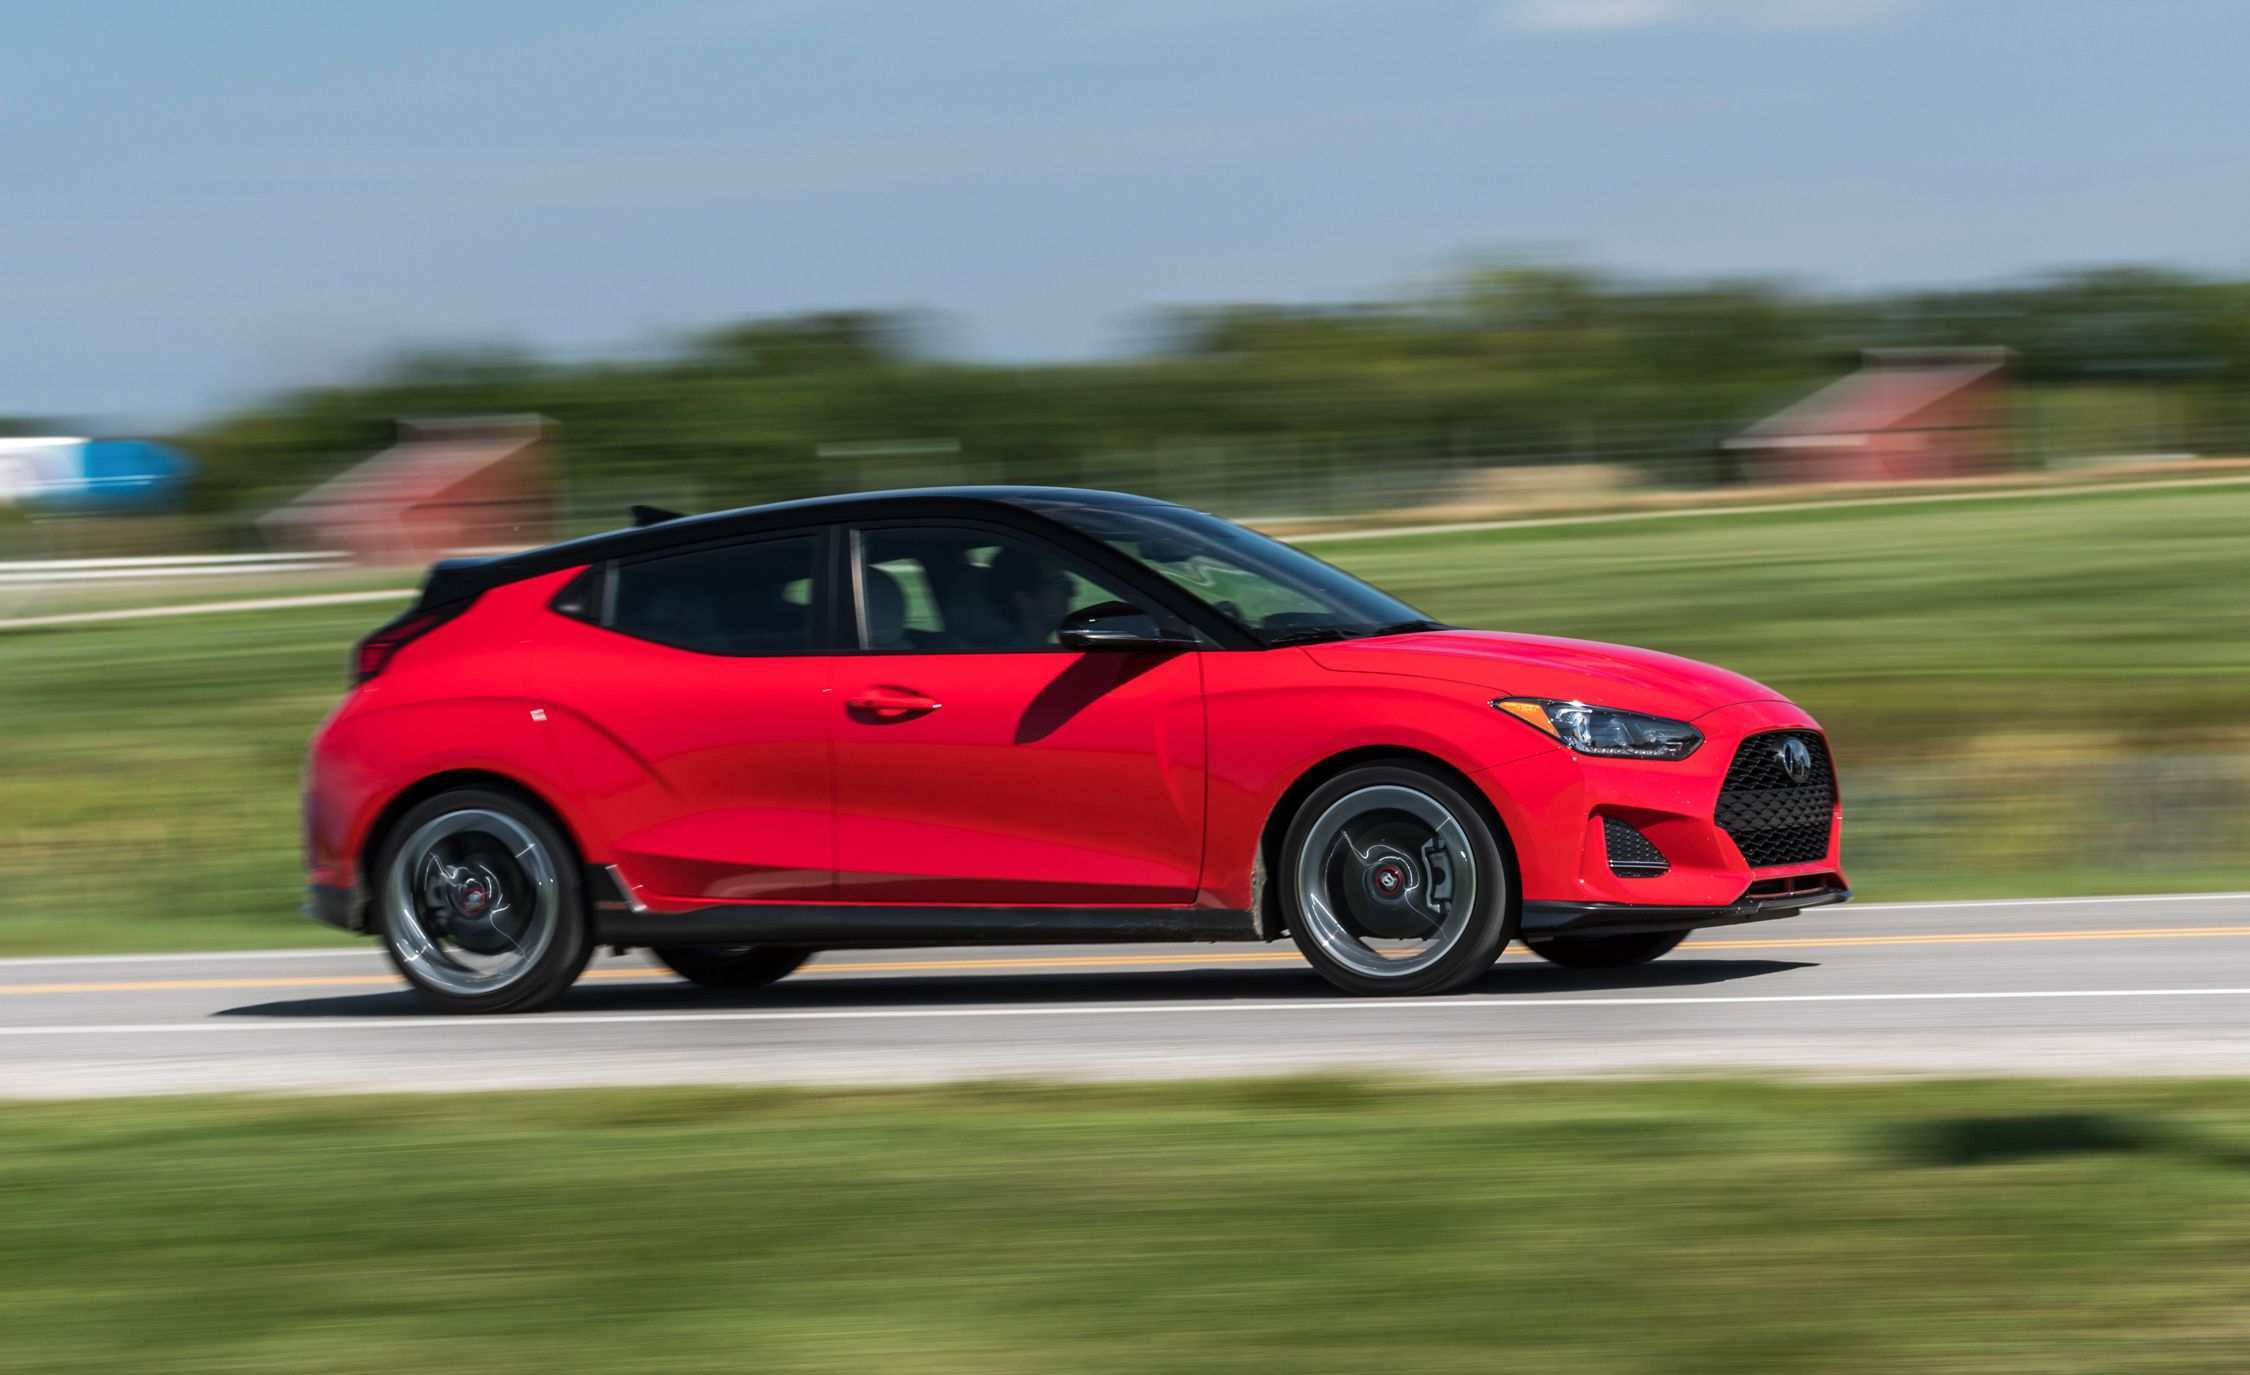 64 The 2019 Hyundai Veloster Turbo Review New Concept with 2019 Hyundai Veloster Turbo Review